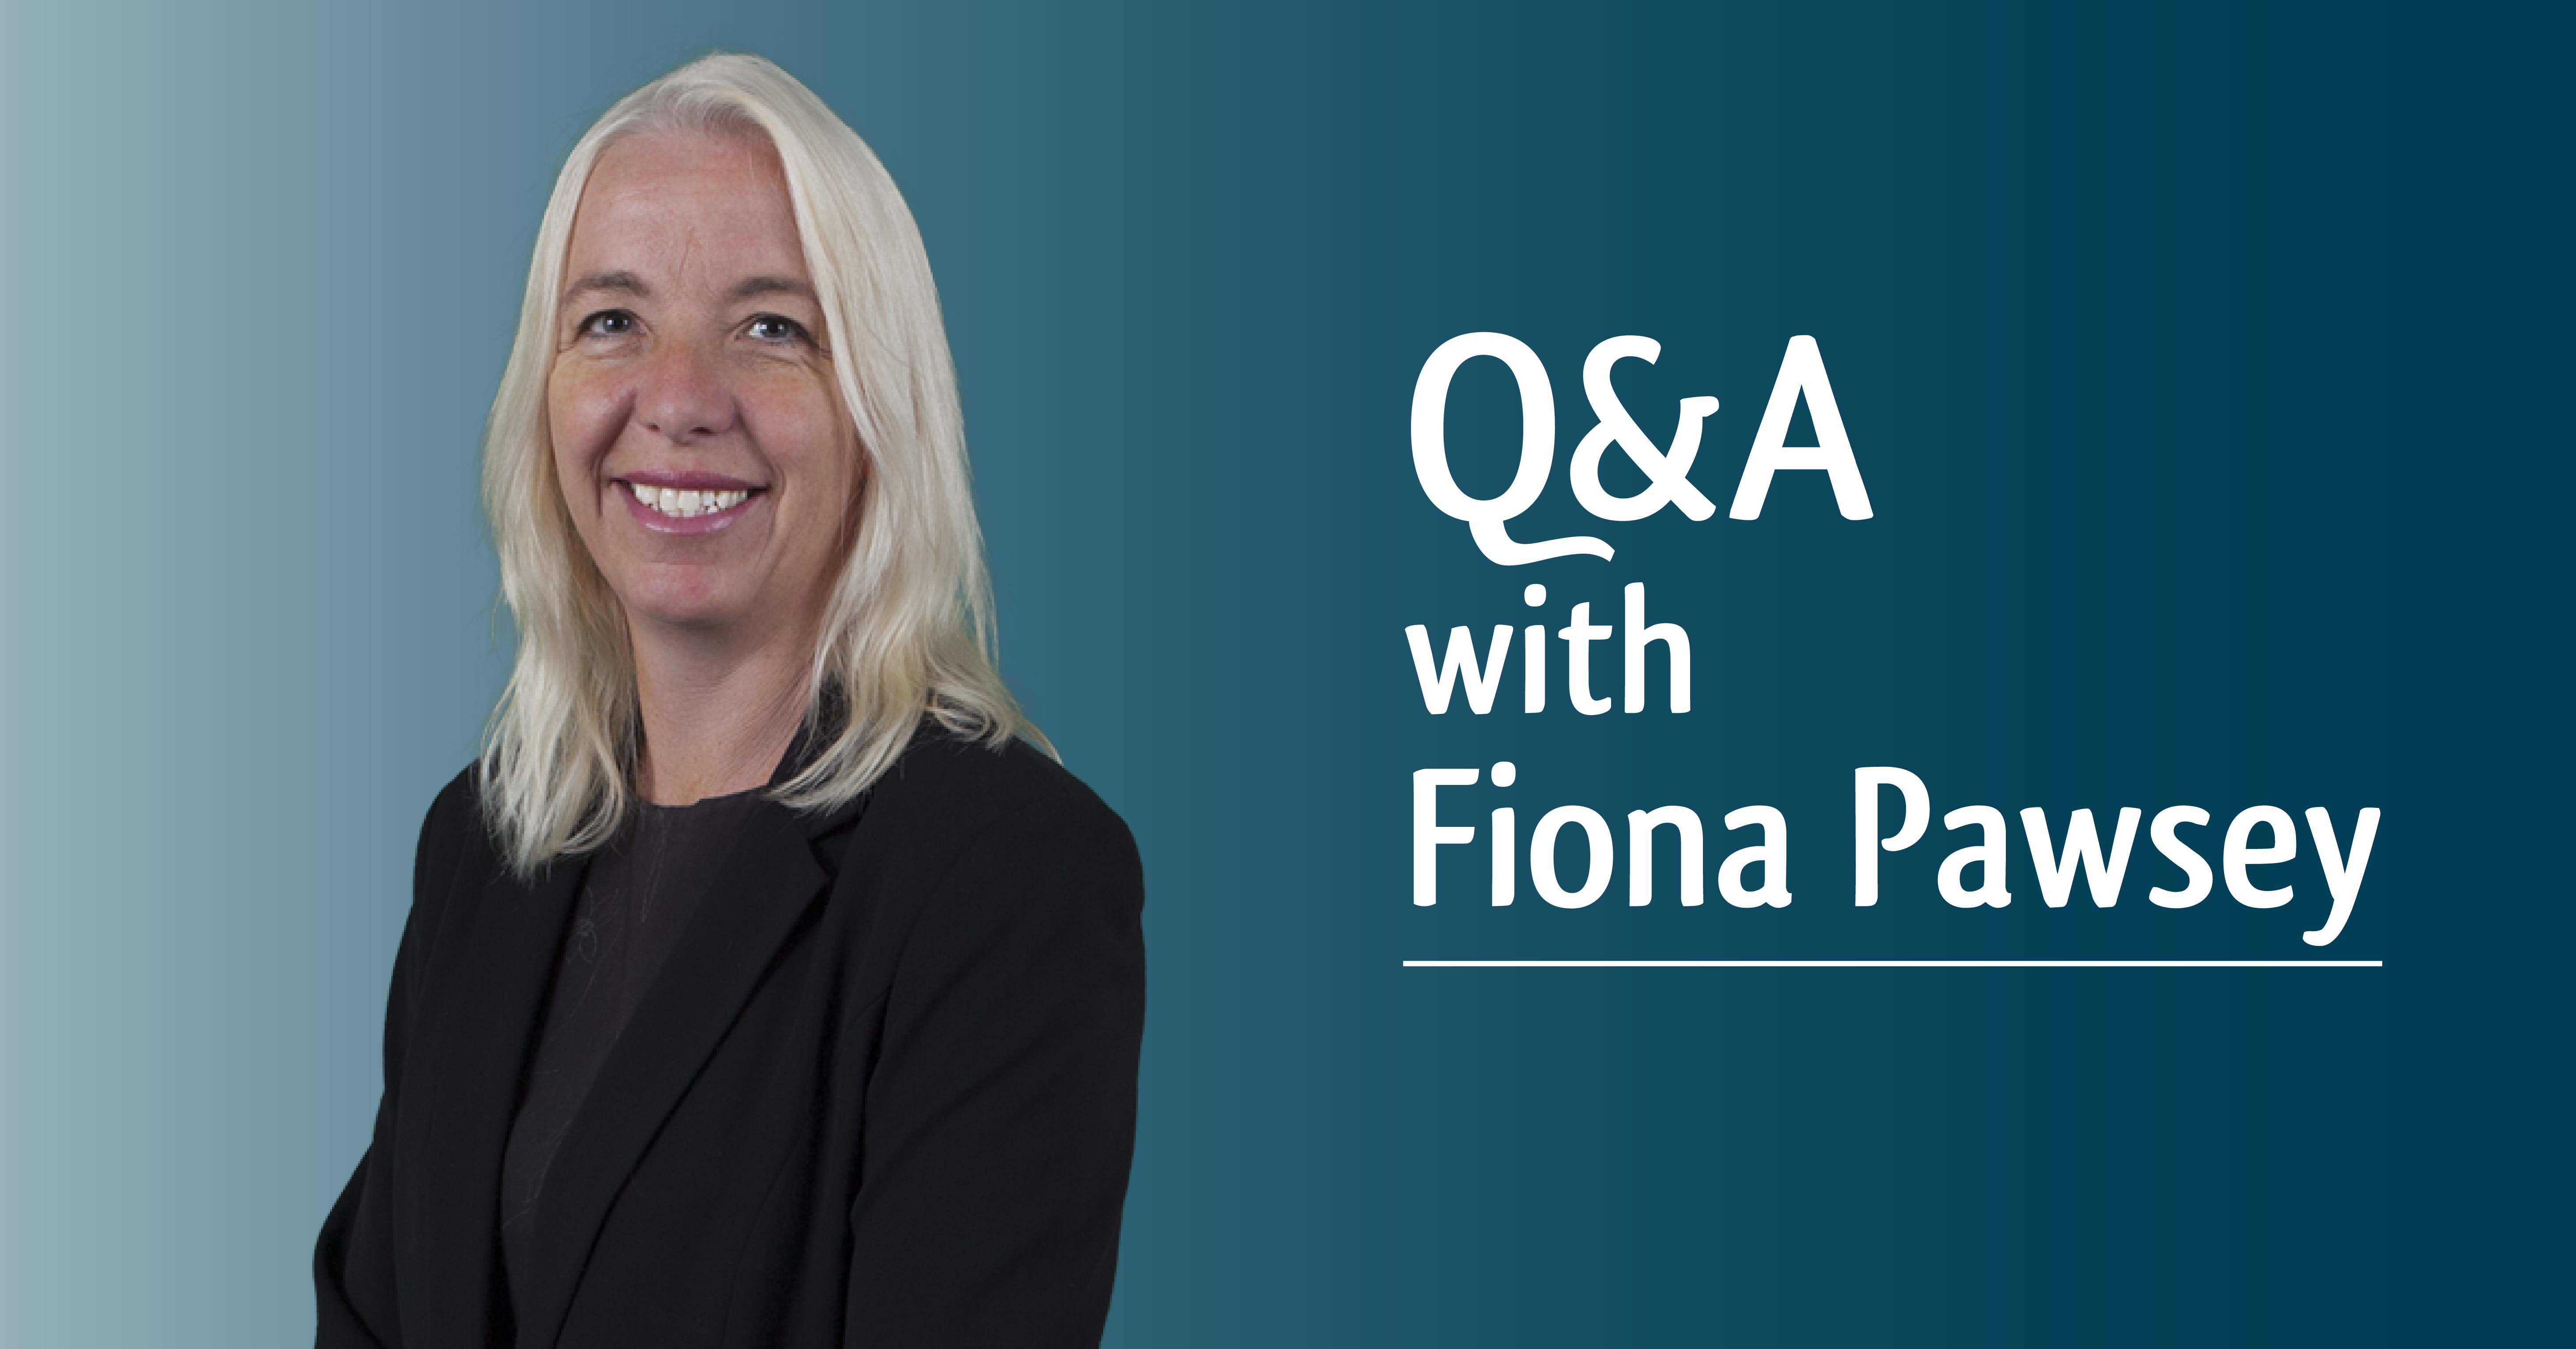 Q&A with Fiona Pawsey